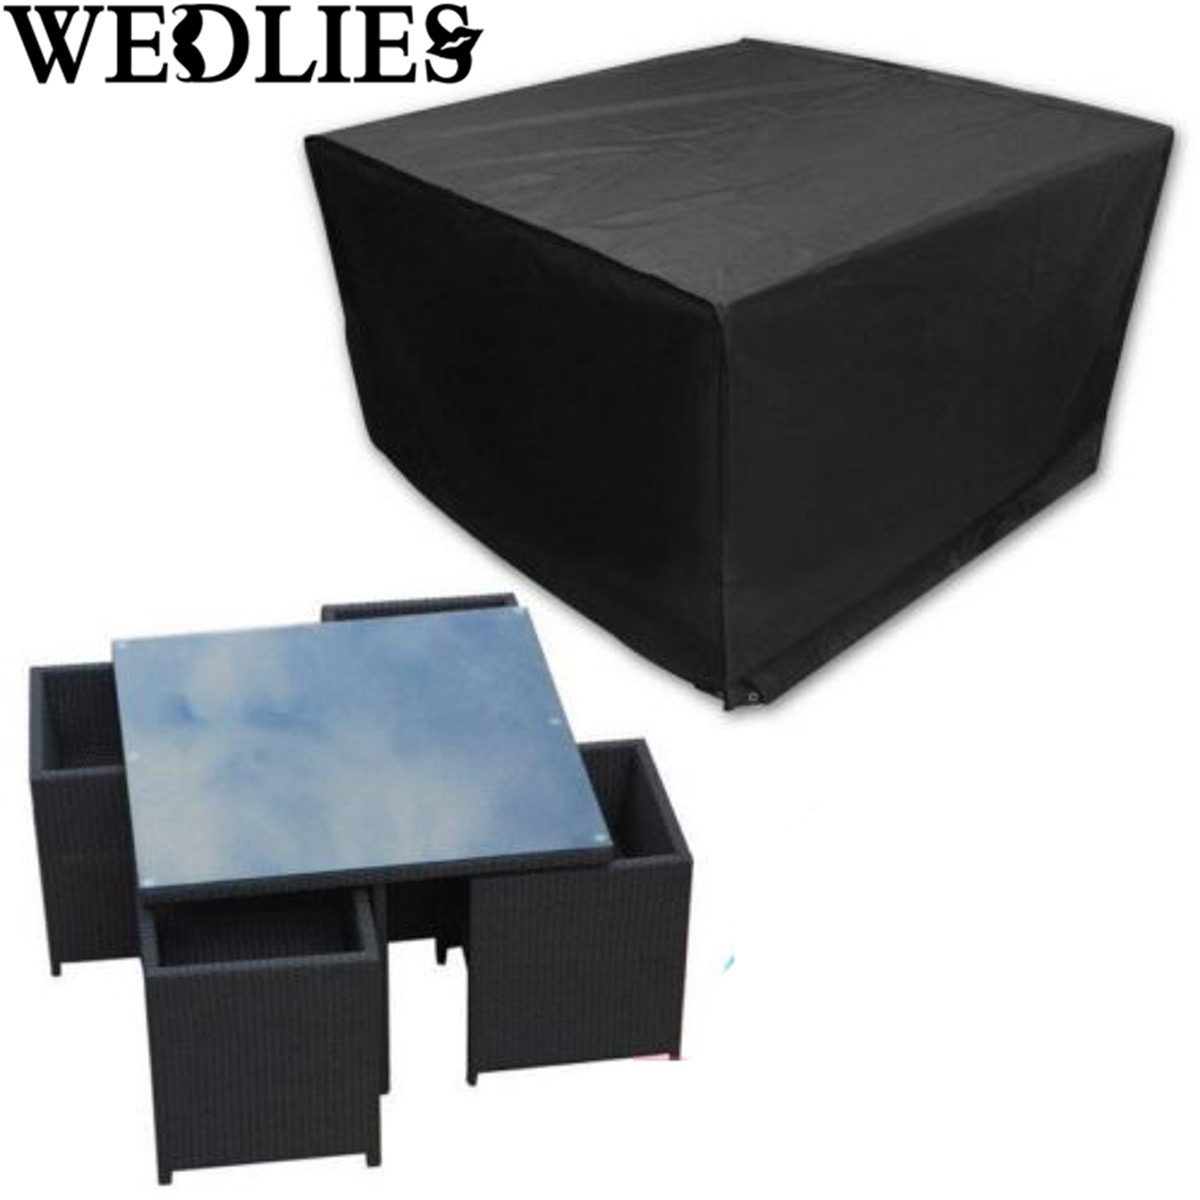 4 Seater Waterproof Outdoor Table Chair Patio Garden Furniture Rain Cover  Polyester Garden Furnishings Table Cloth